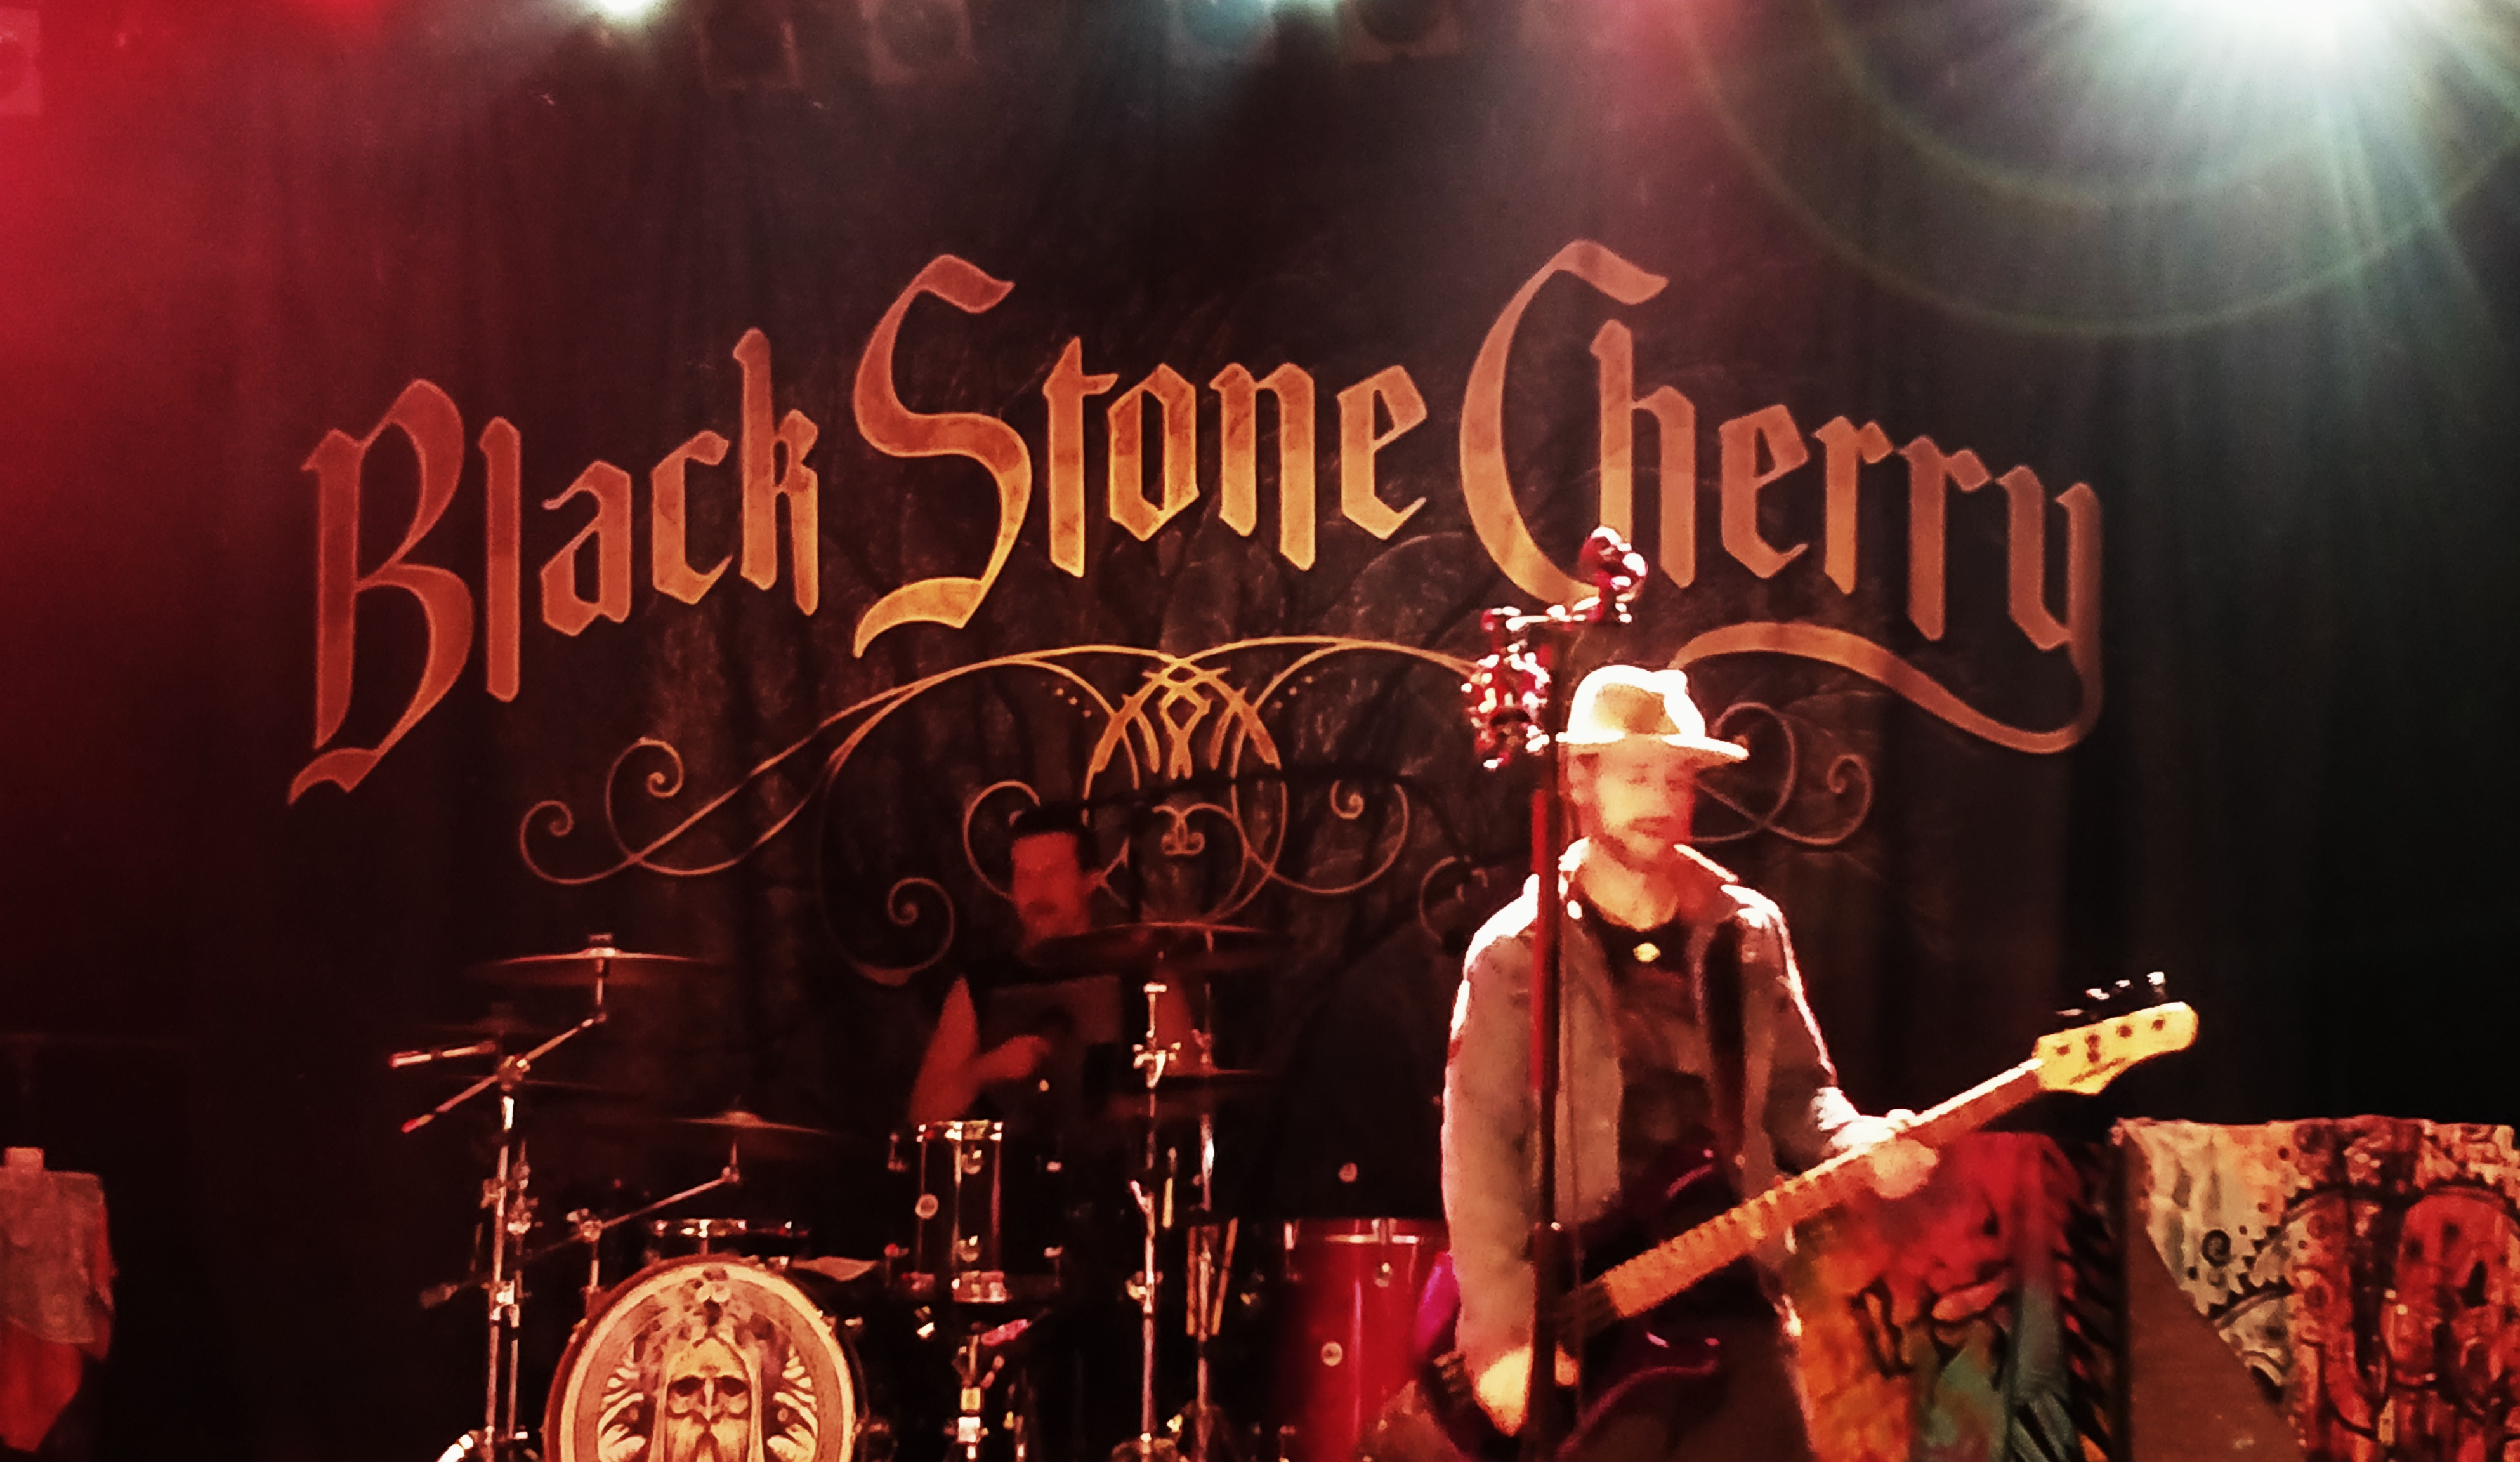 black-stone-cherry-live-in-der-arena-wien-24-november-family-tree-tour-2018